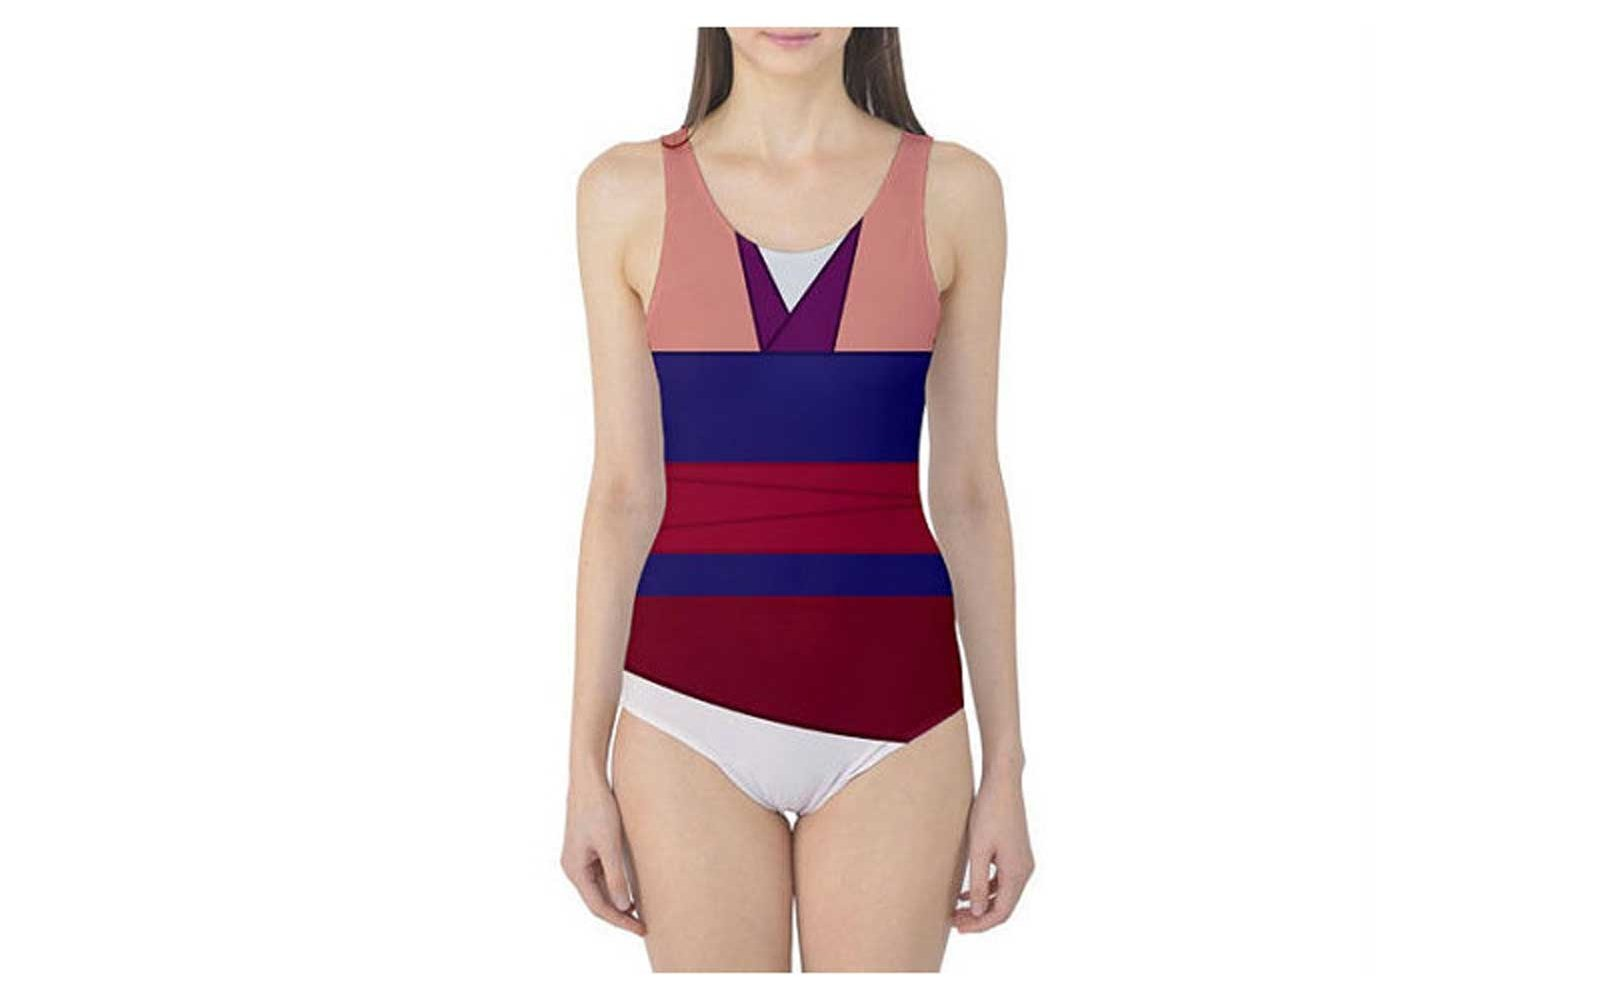 Pink Mulan Inspired One-Piece Swimsuit